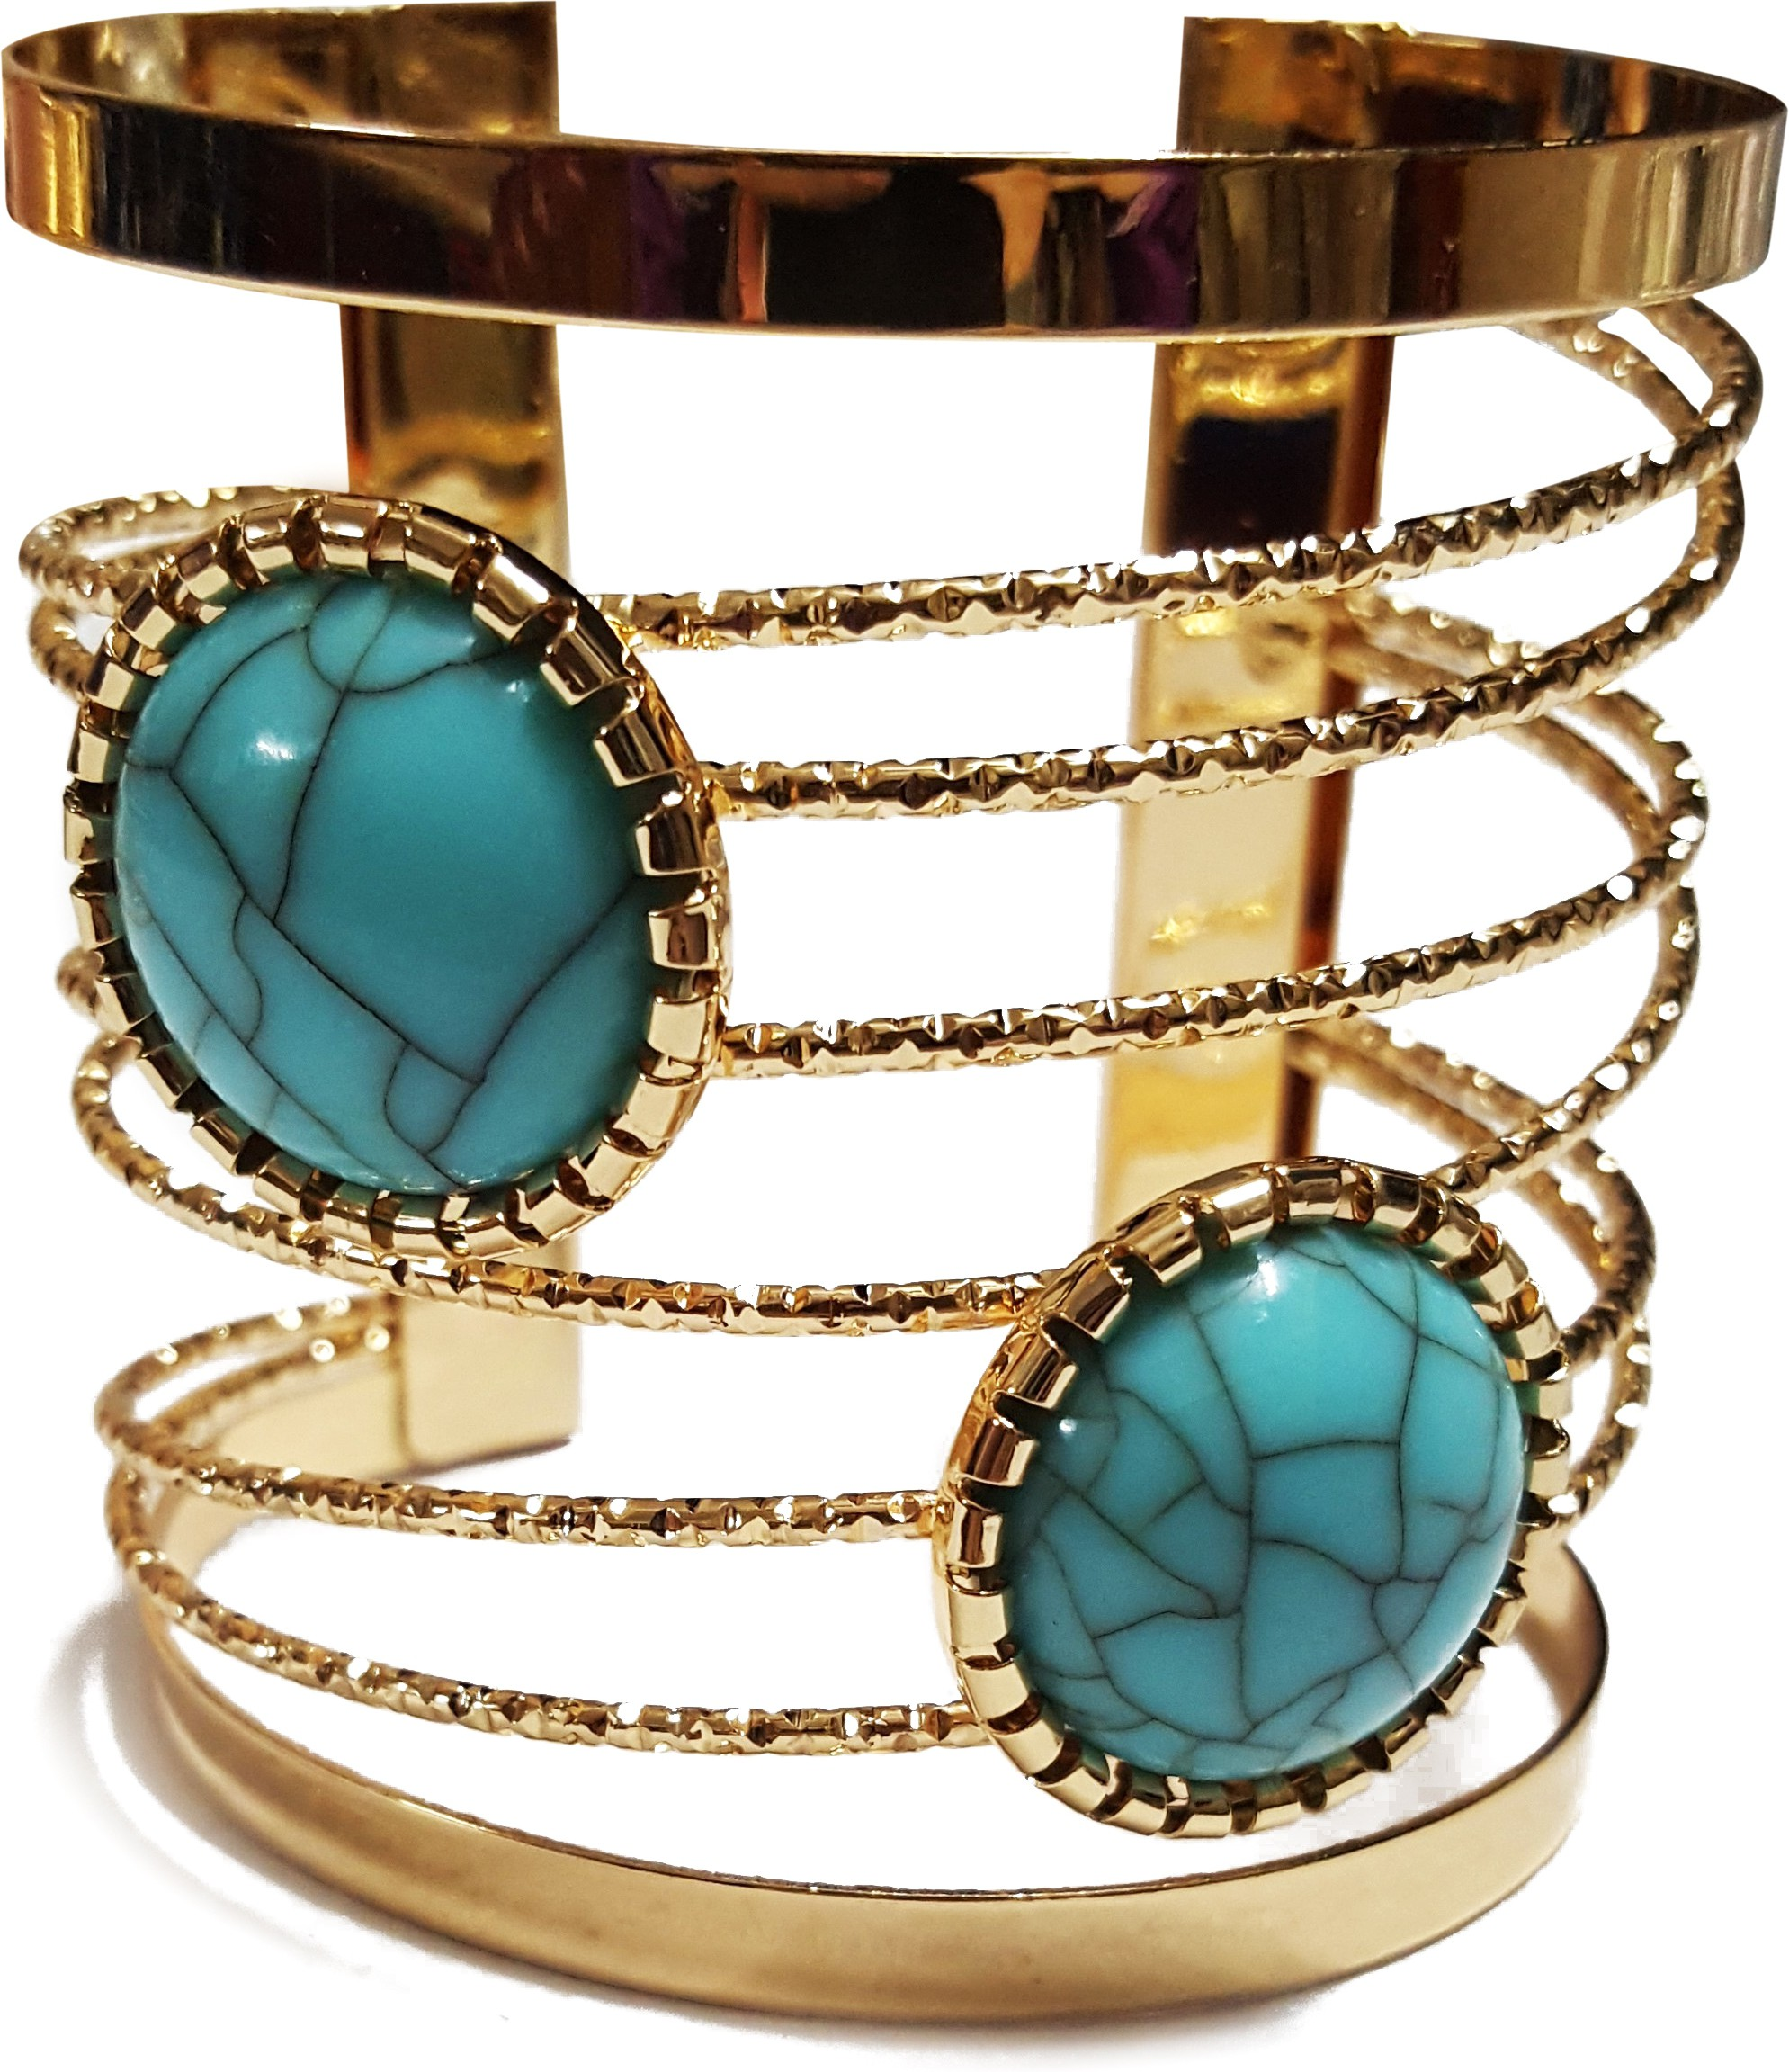 Deals - Delhi - Cuff Bracelets <br> Fashion Jewellery<br> Category - jewellery<br> Business - Flipkart.com